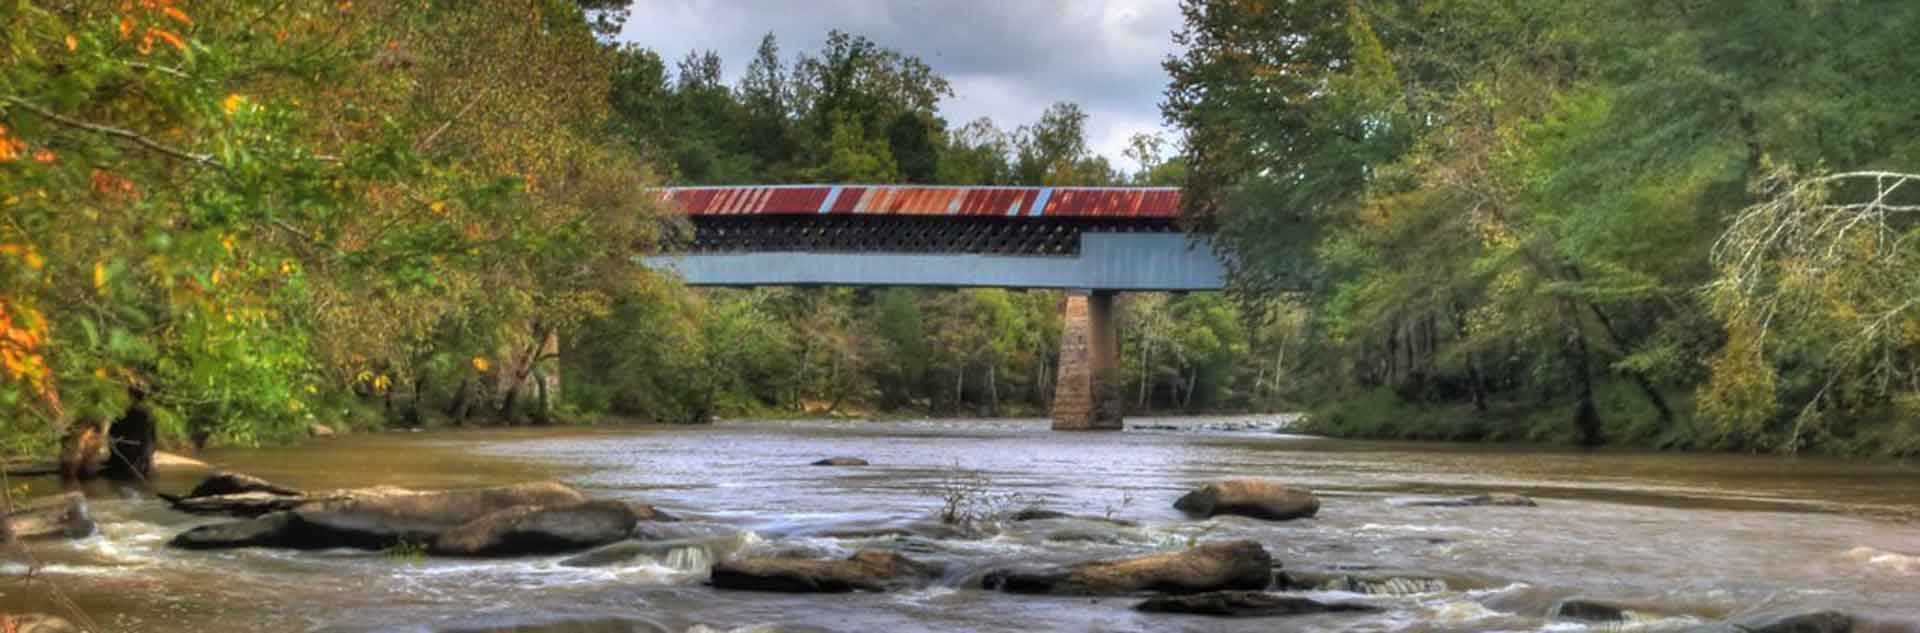 A view of Blount County covered bridge